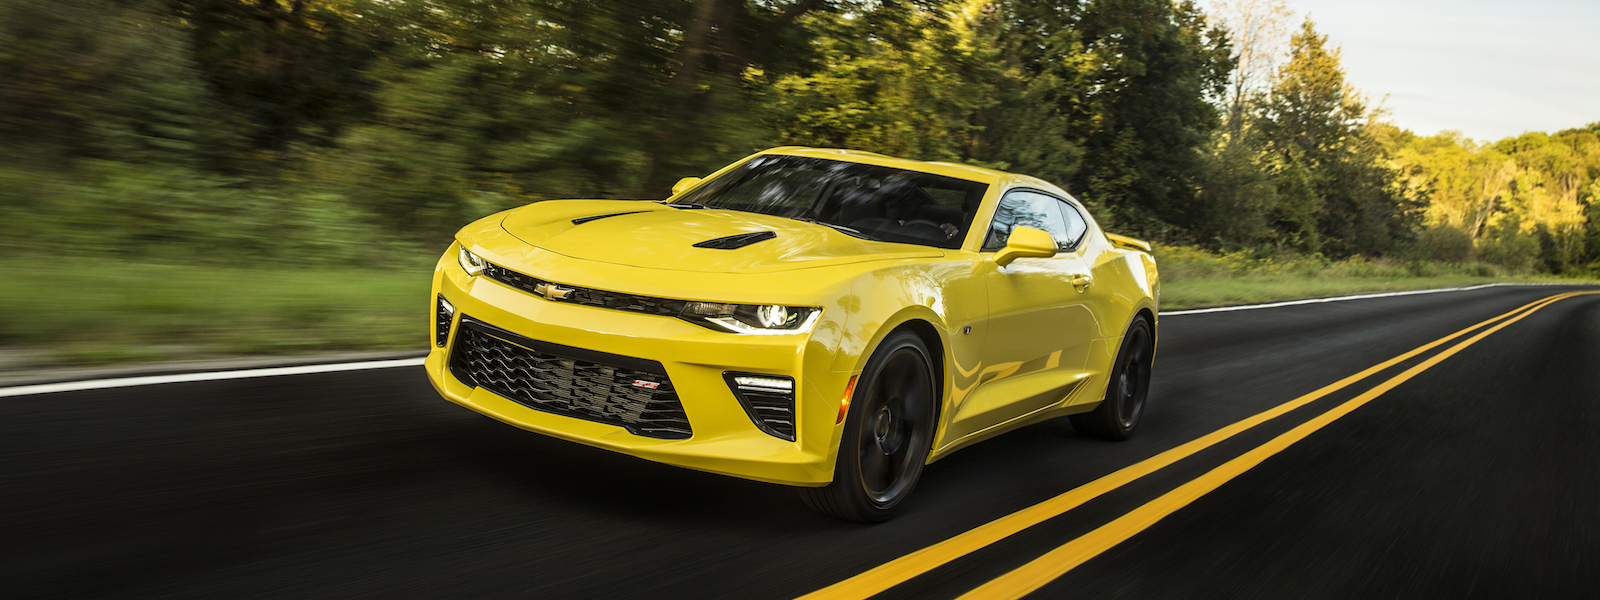 2016 Chevy Camaro Performance